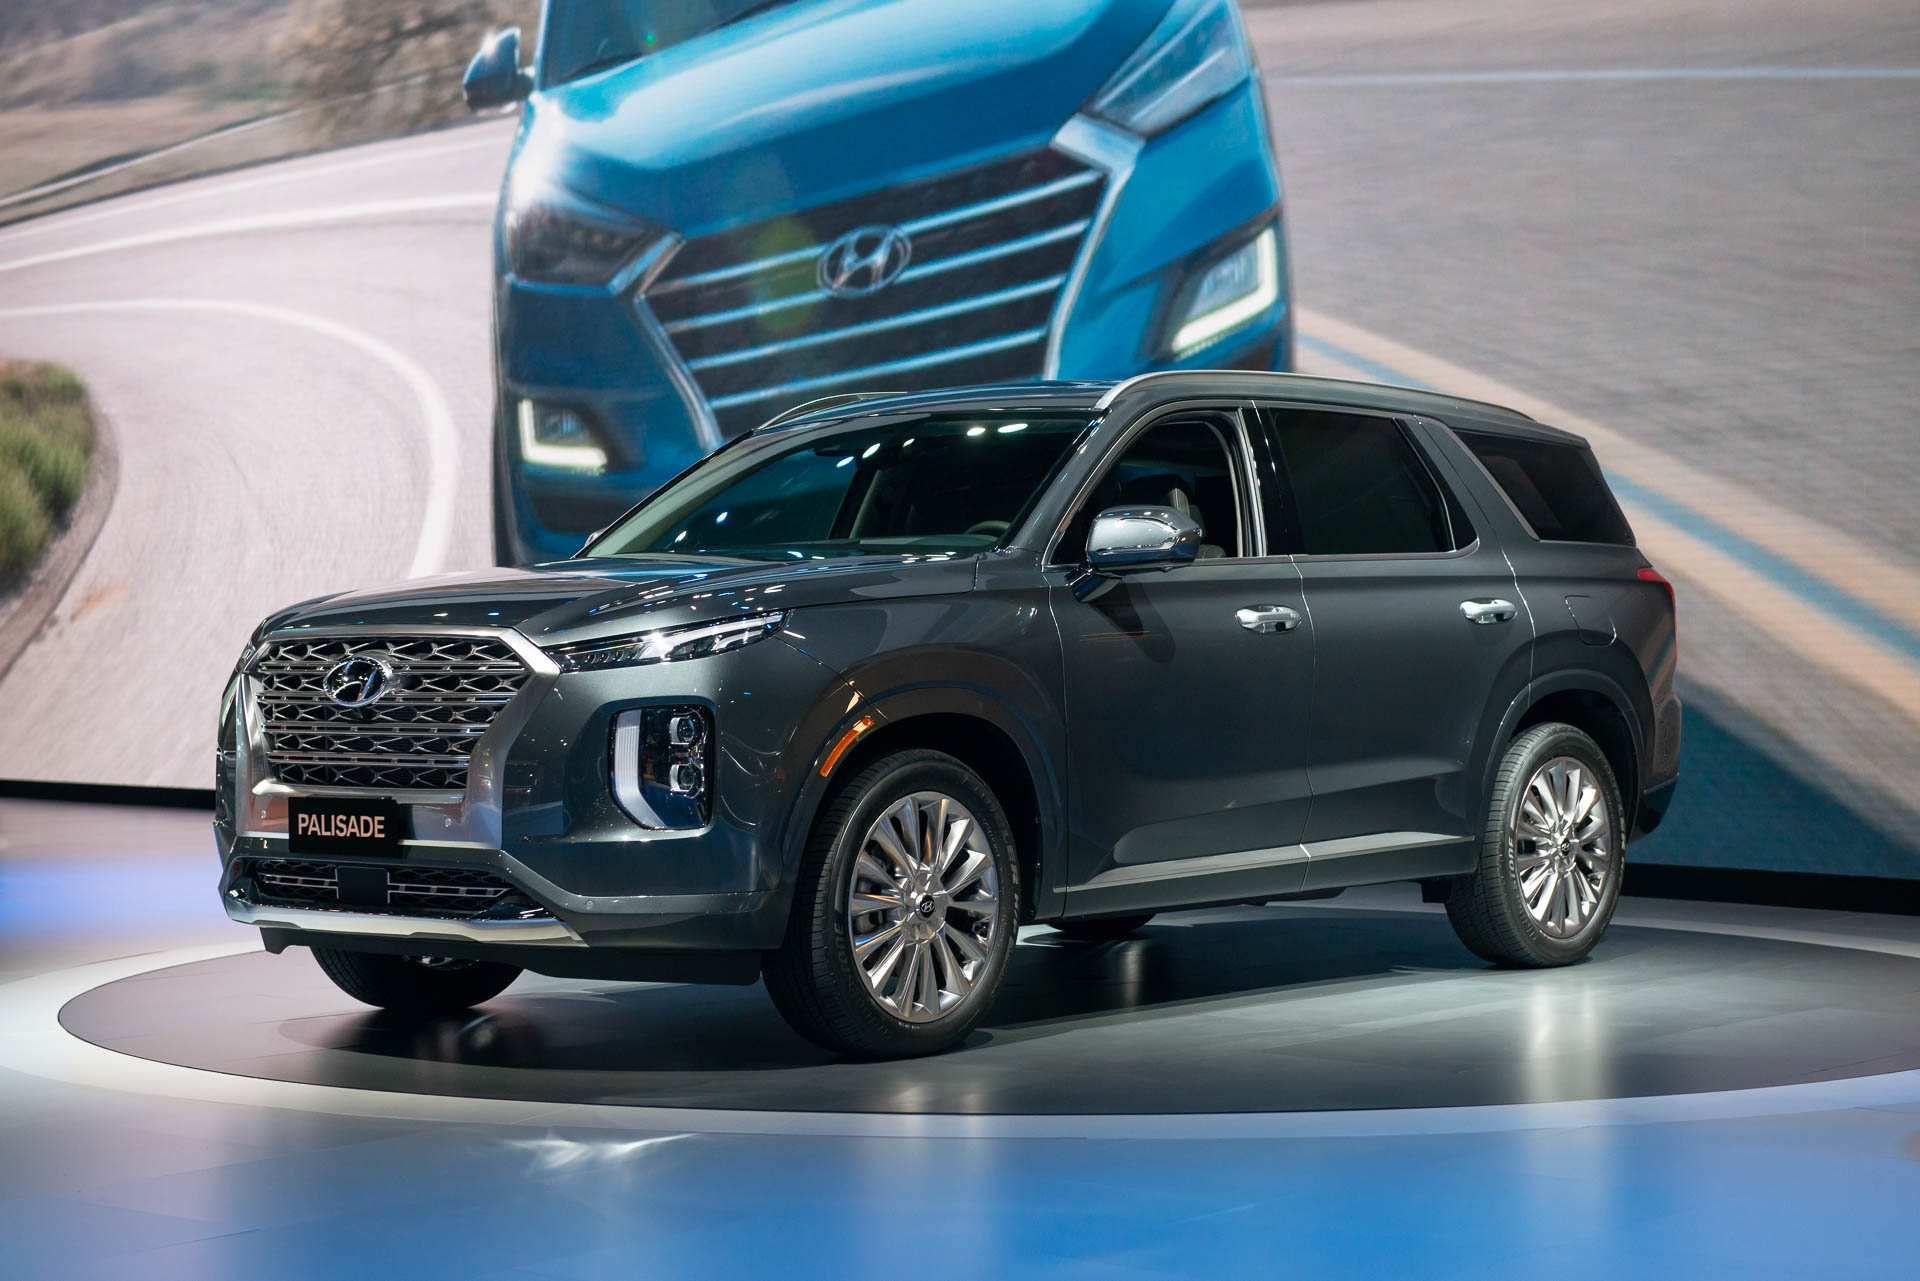 58 Concept of Cost Of 2020 Hyundai Palisade Ratings by Cost Of 2020 Hyundai Palisade